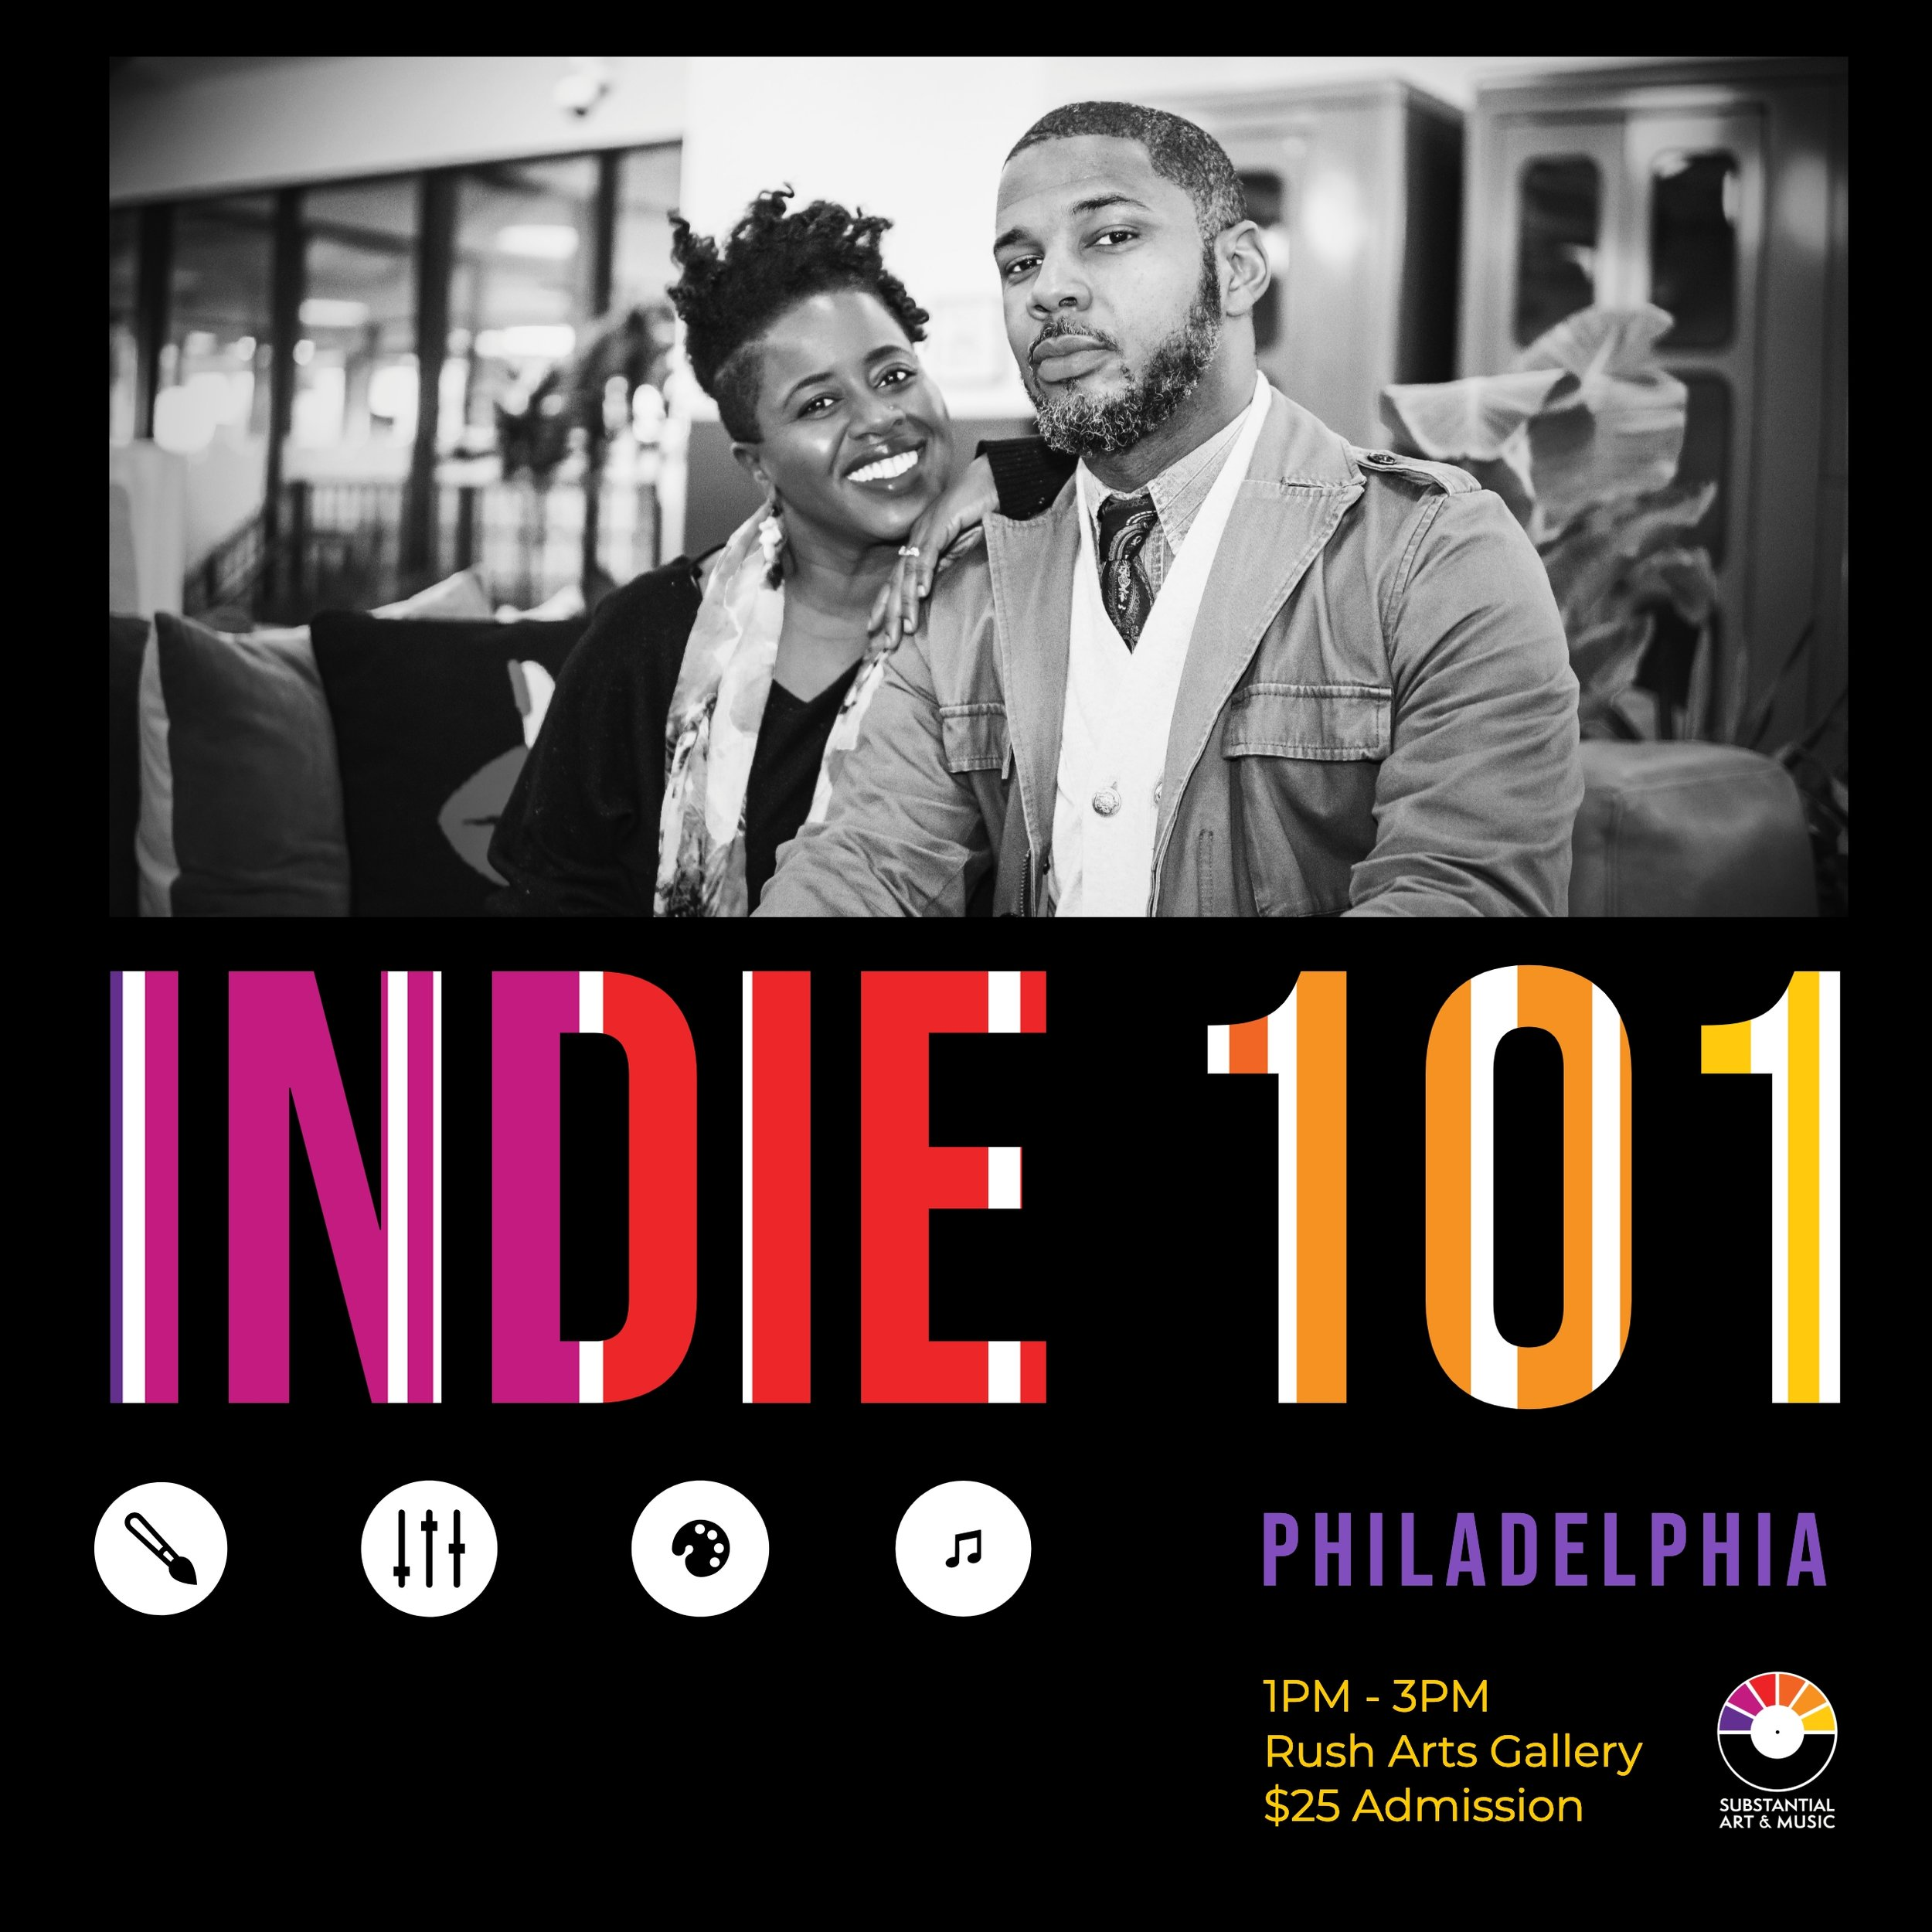 Indie 101 Philly Flyer.jpg